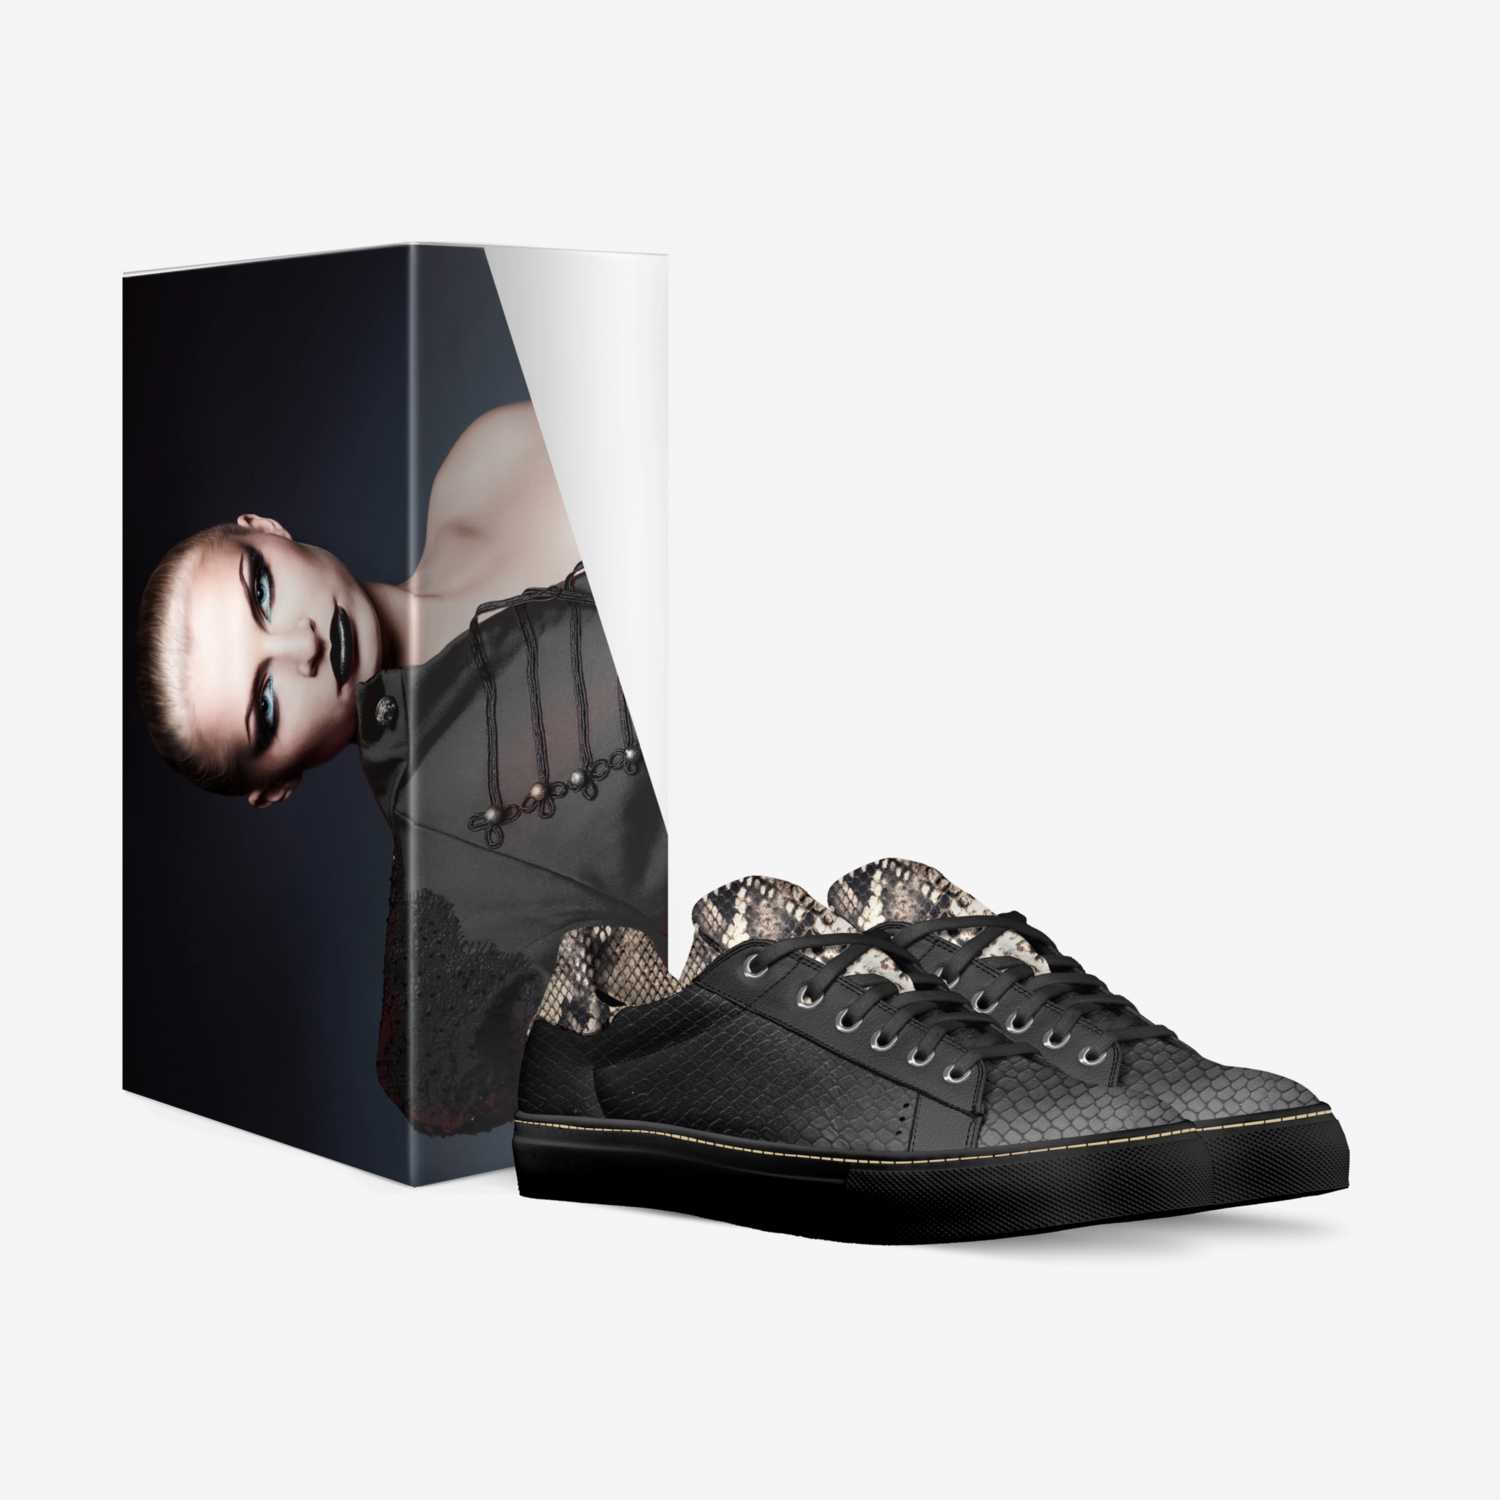 Evo custom made in Italy shoes by Maxim Pardi | Box view